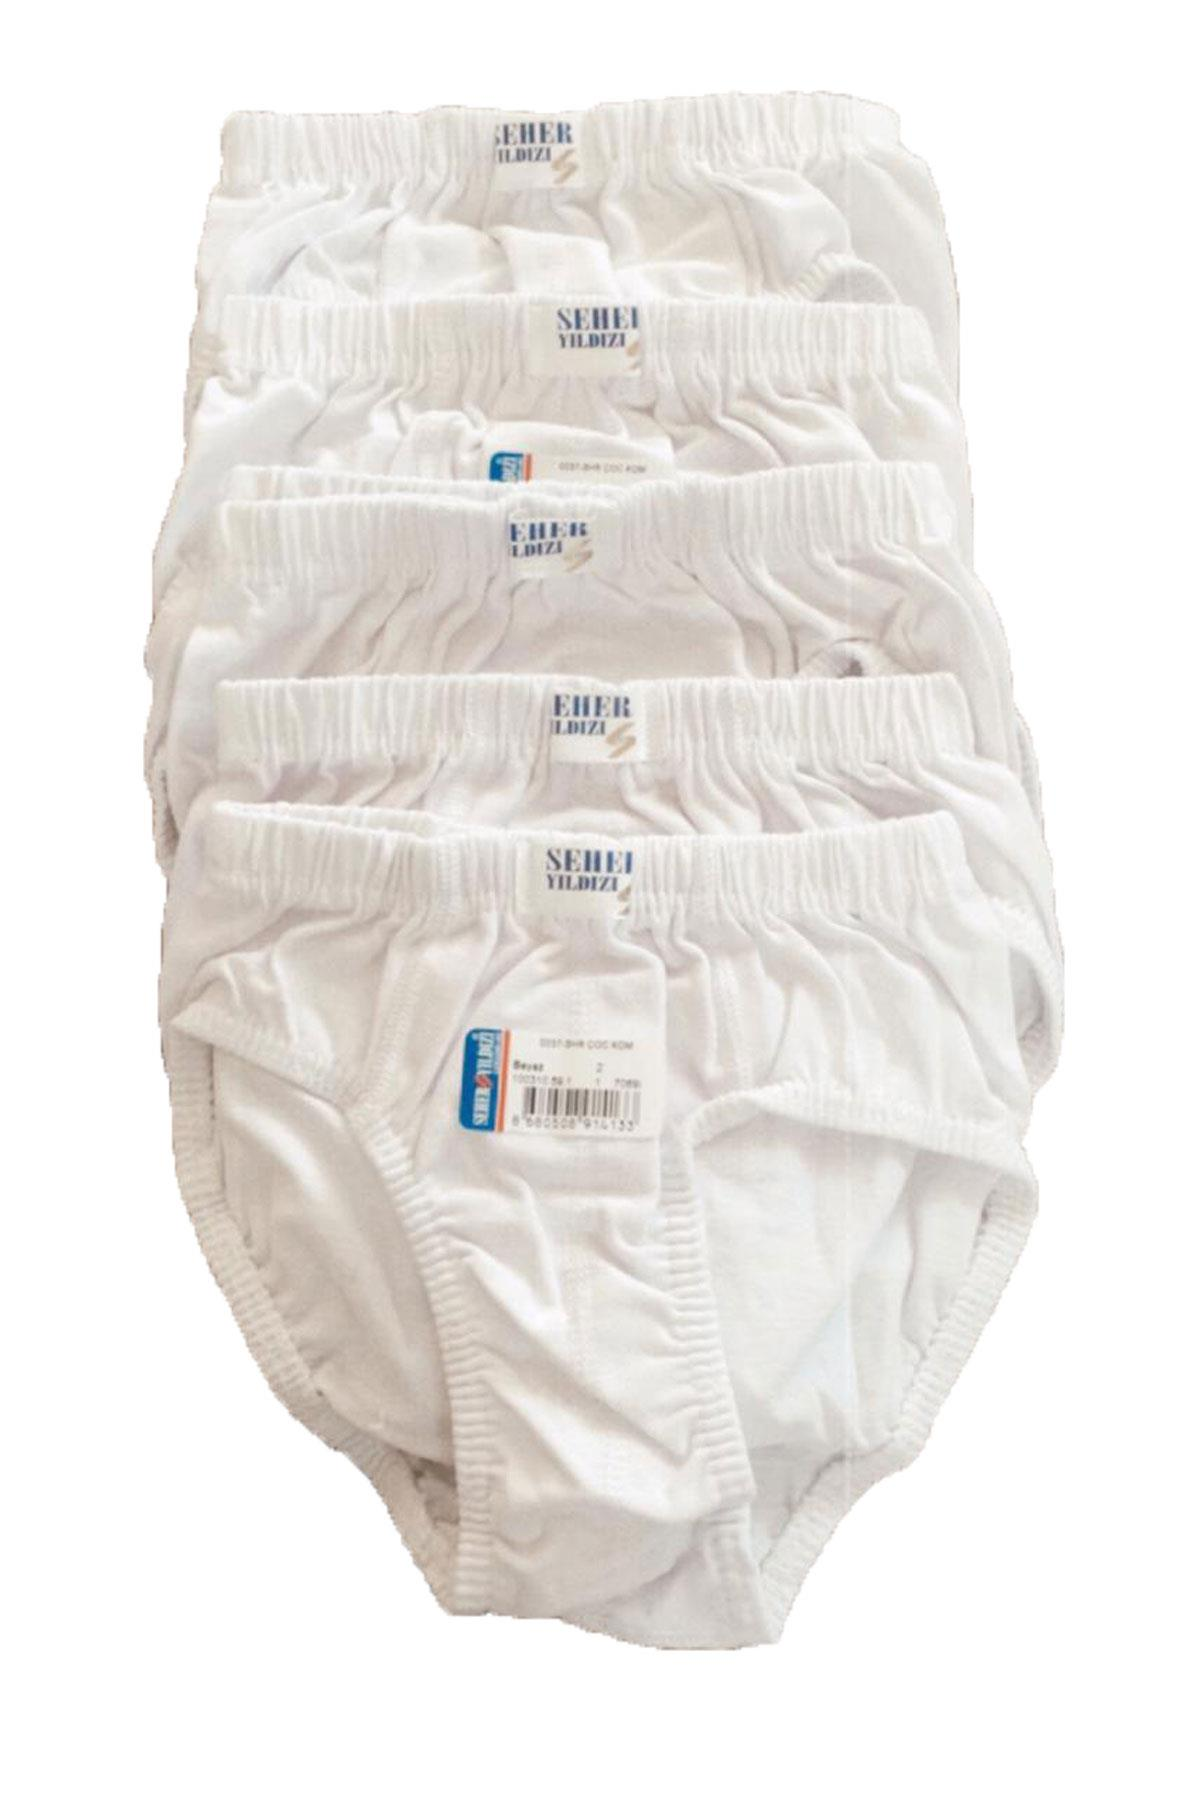 Boy's Cotton Panty- 6 Pieces